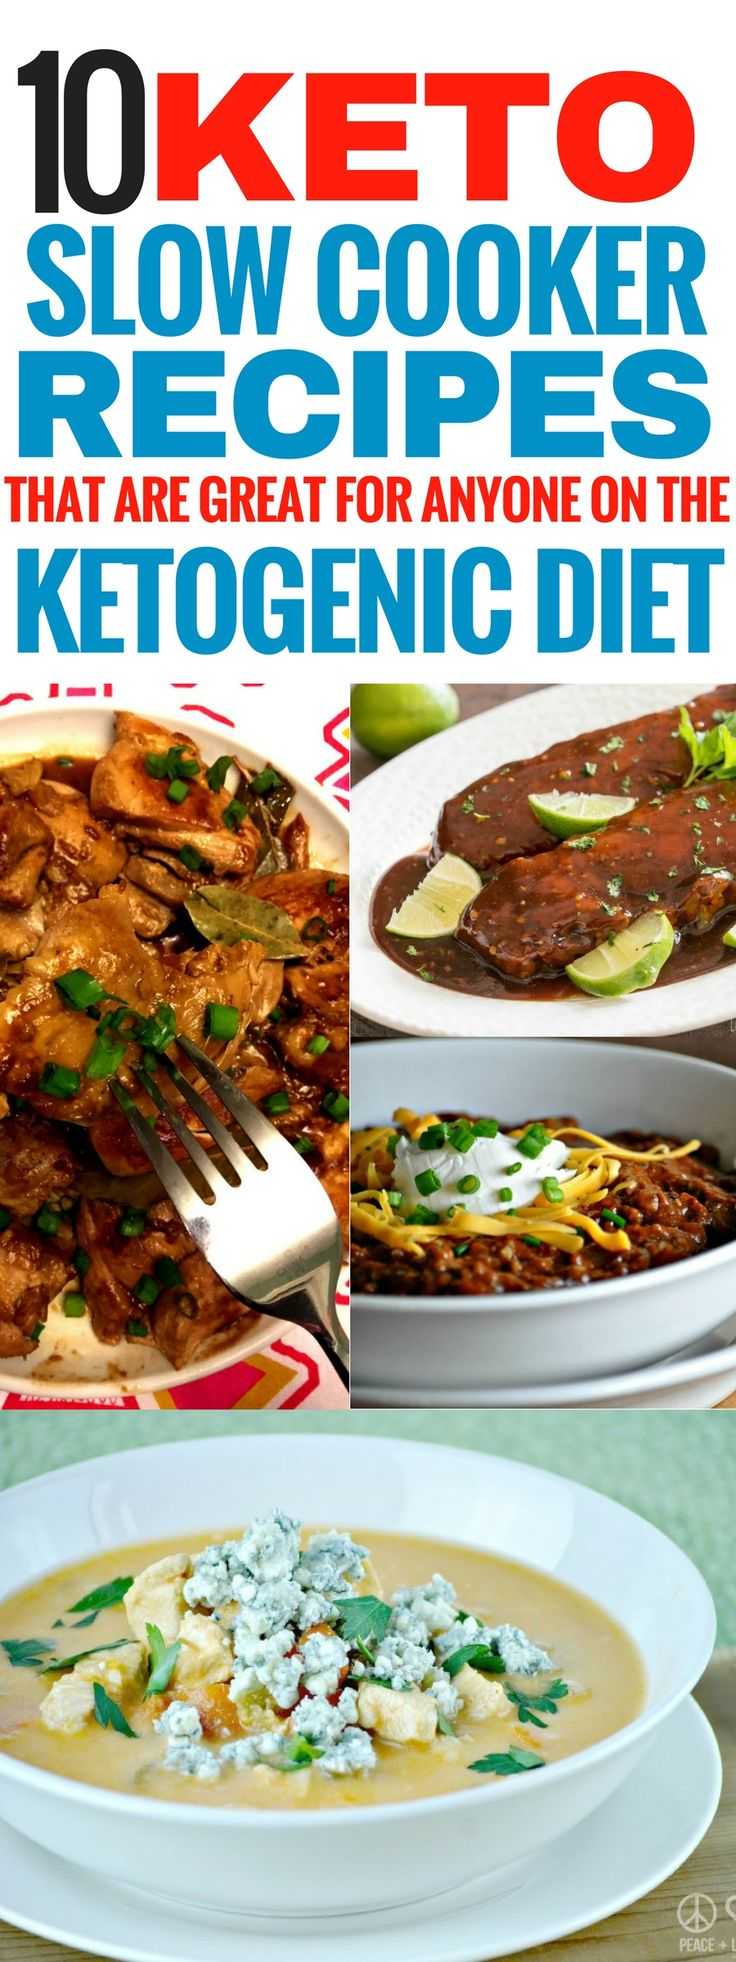 The keto slow cooker recipes are THE BEST! I'm so glad I found these slow cooker ketogenic recipes. Now my family and I can enjoy some lunch and dinner recipes that are so easy to make and healthy too! These low carb crock pot recipes are perfrct for easy keto meals! Pinning this for sure!